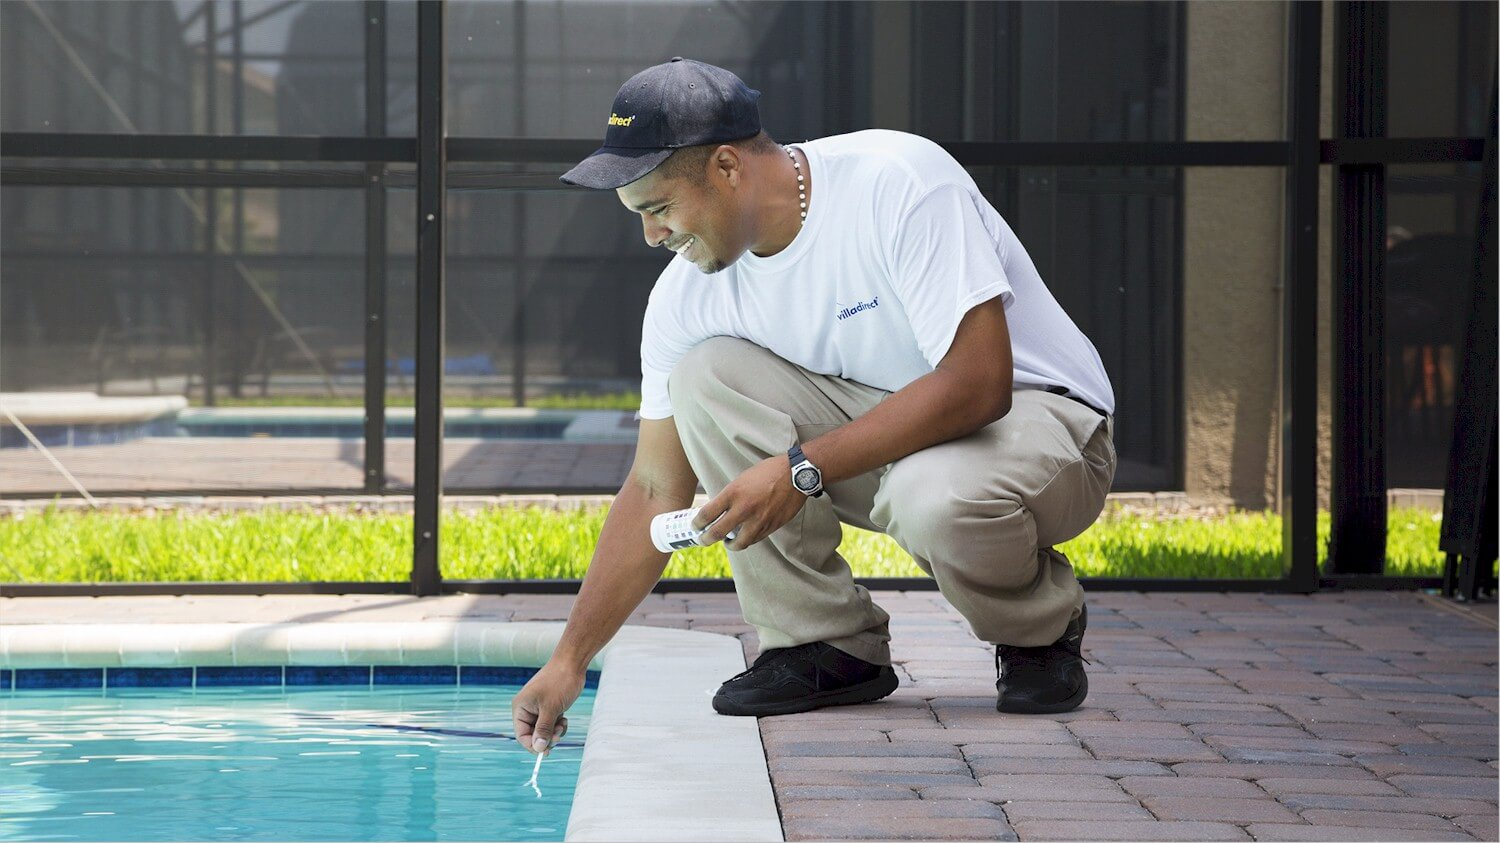 Qualified pool technicians